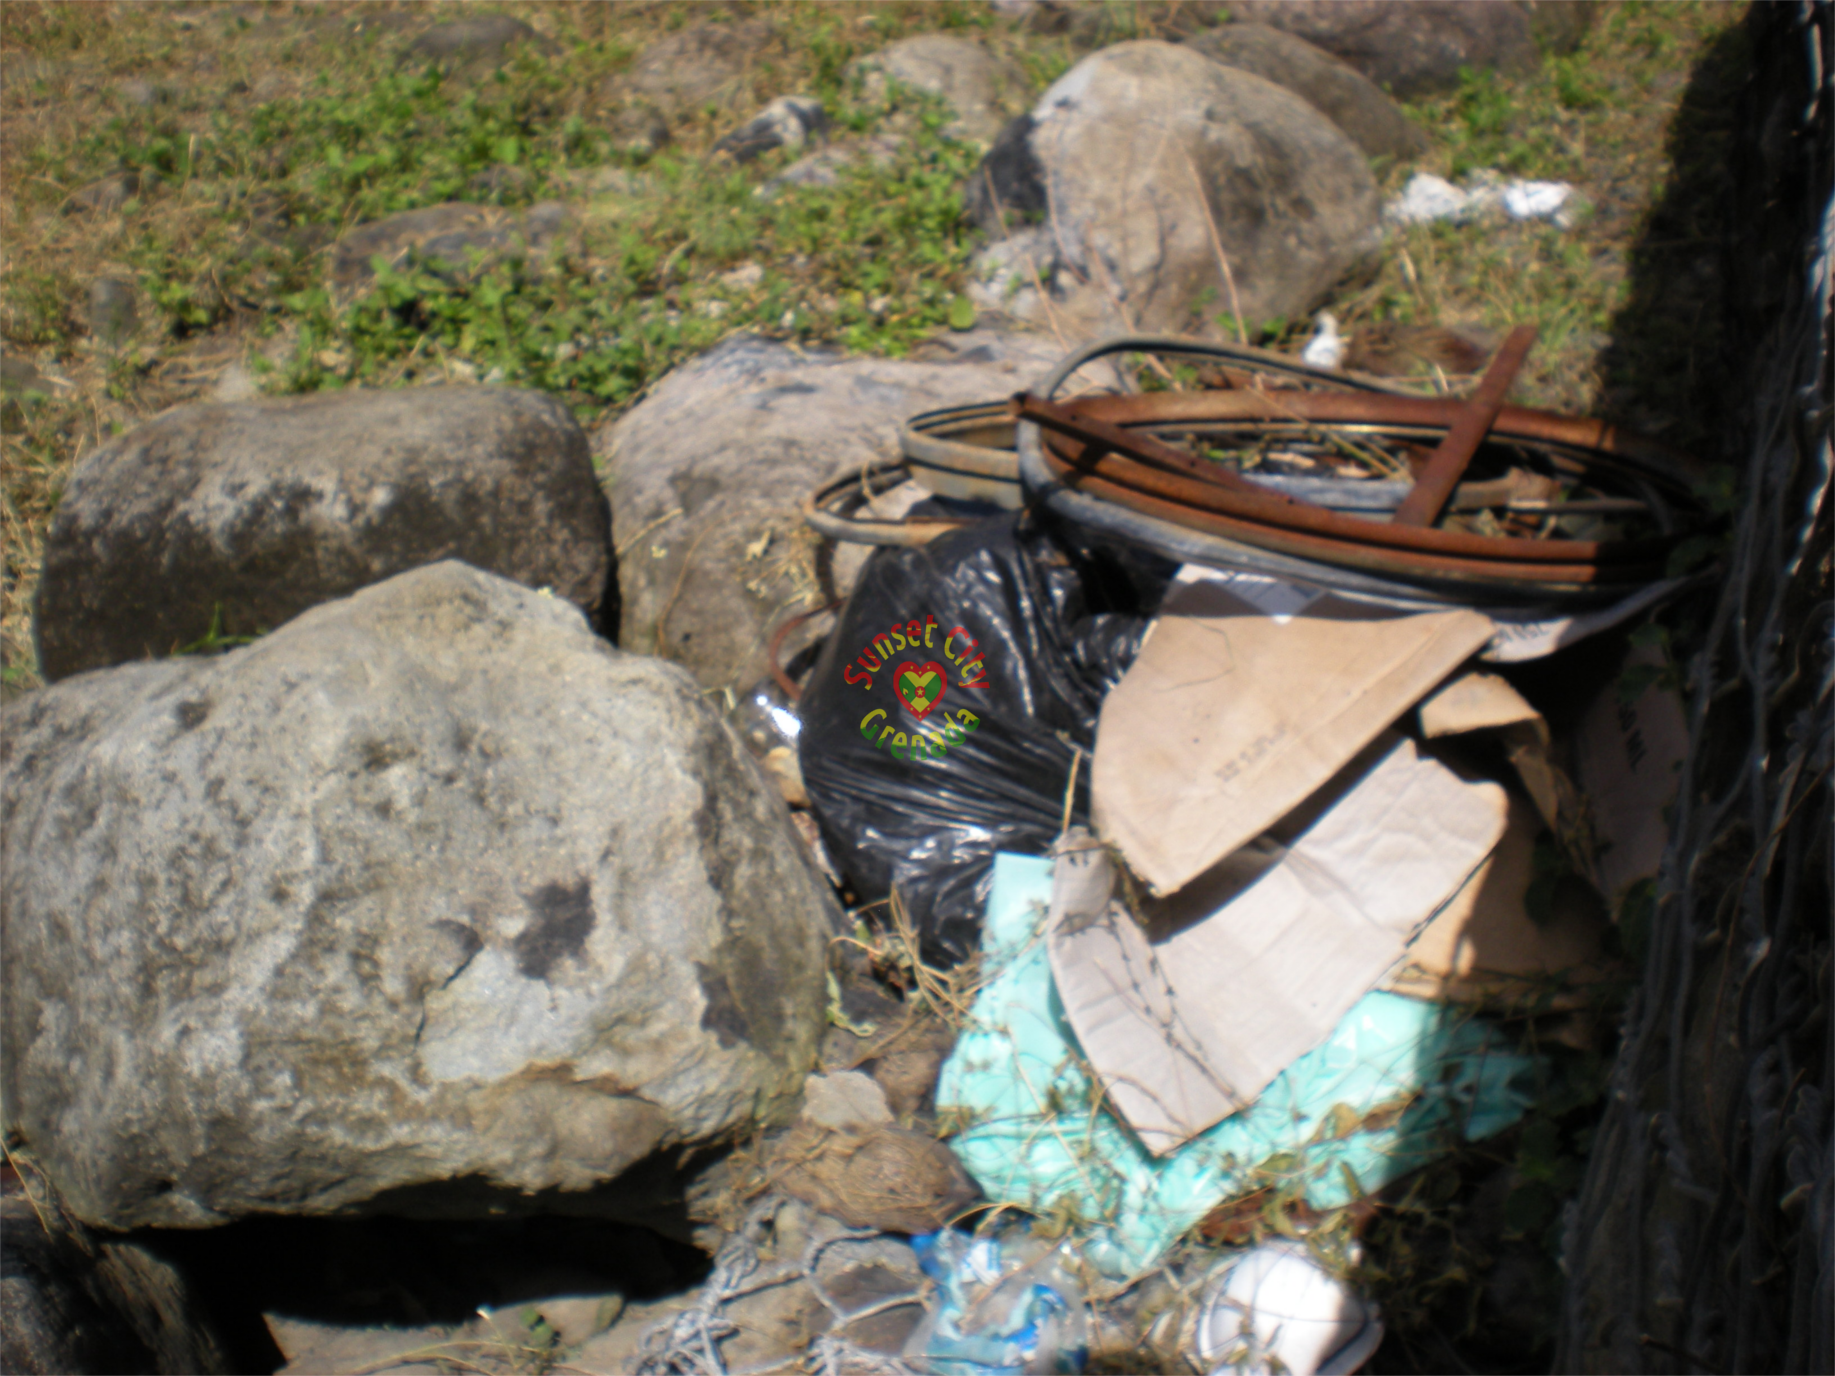 Garbage dumped on banks of river